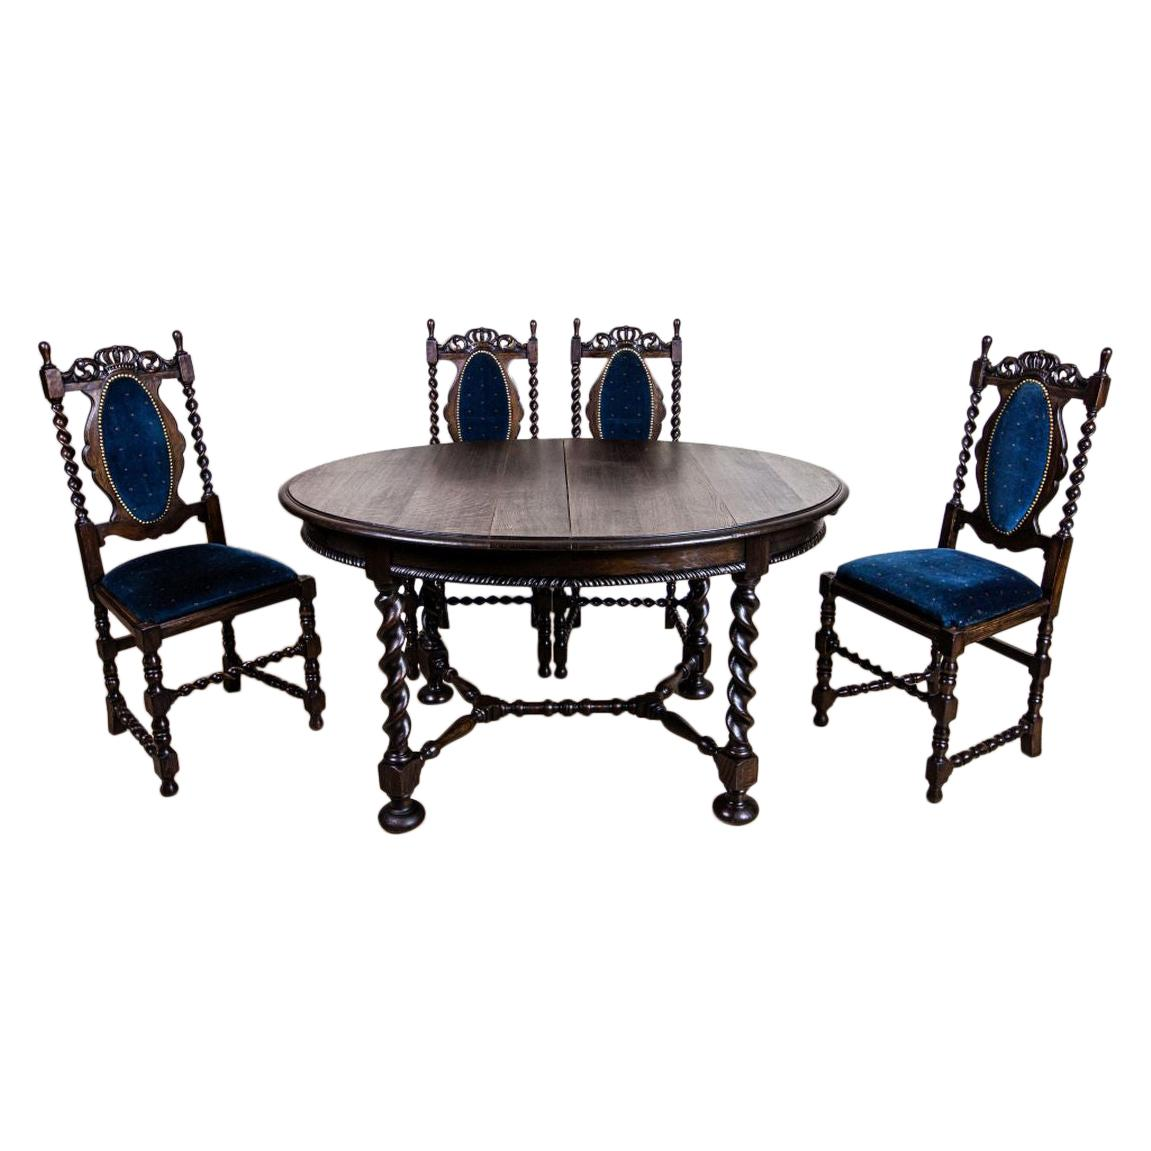 Genial 19th Century Eclectic Oak Carved Table With Chairs